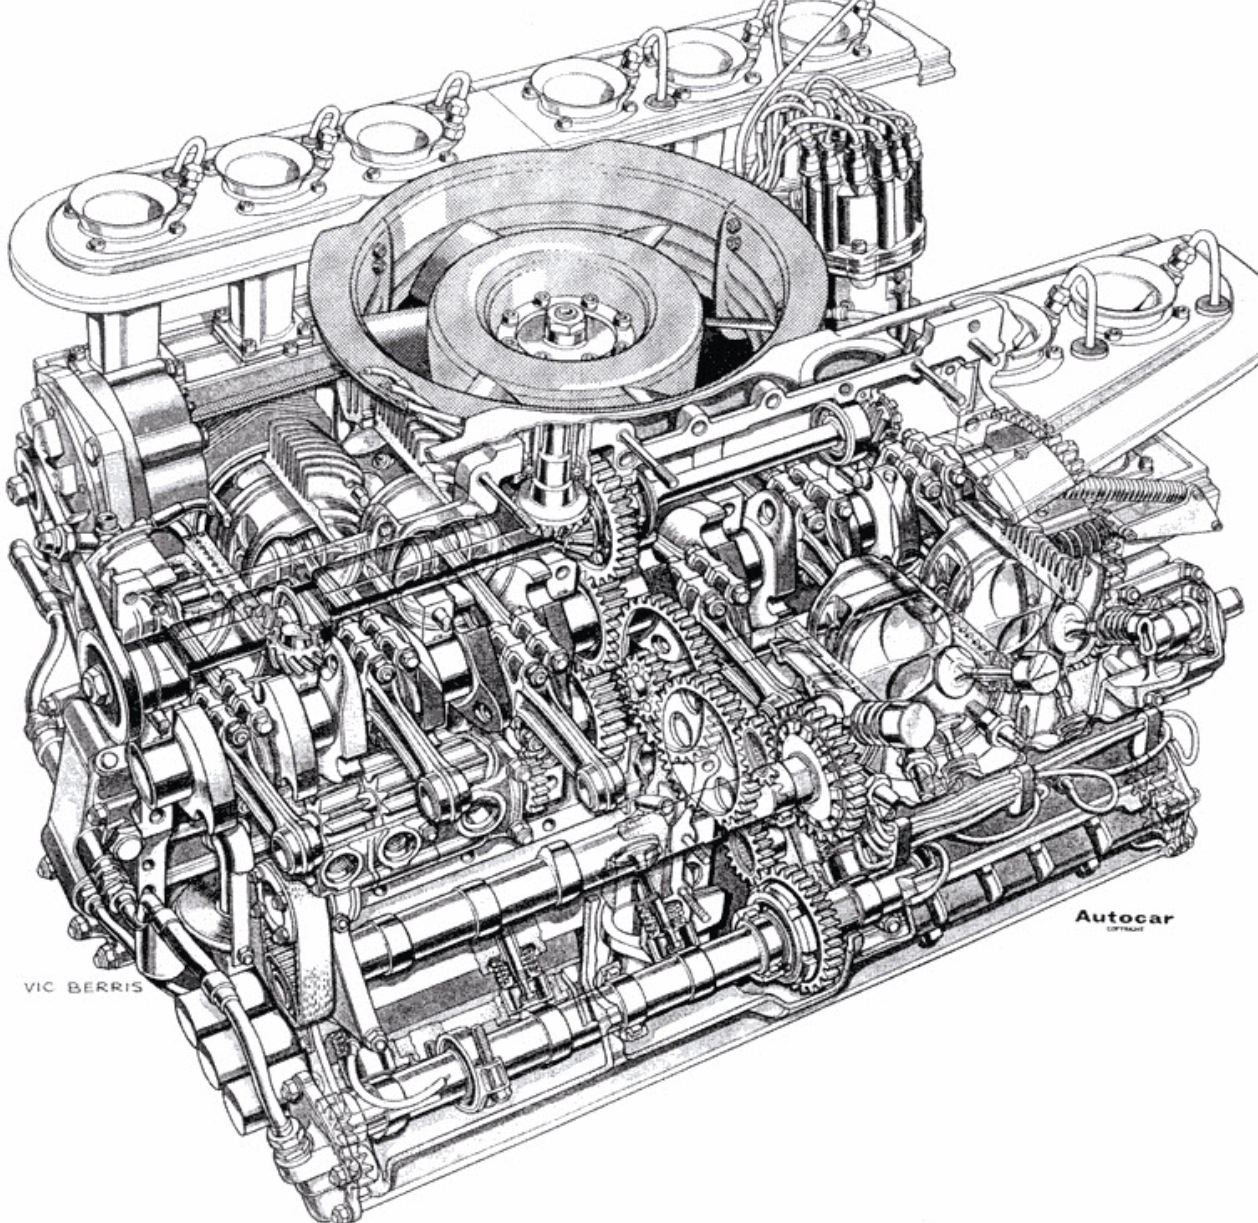 The Amazo Effect Cutaway Diagram Files Porsche 917 Engine By Supercar Vic Berris